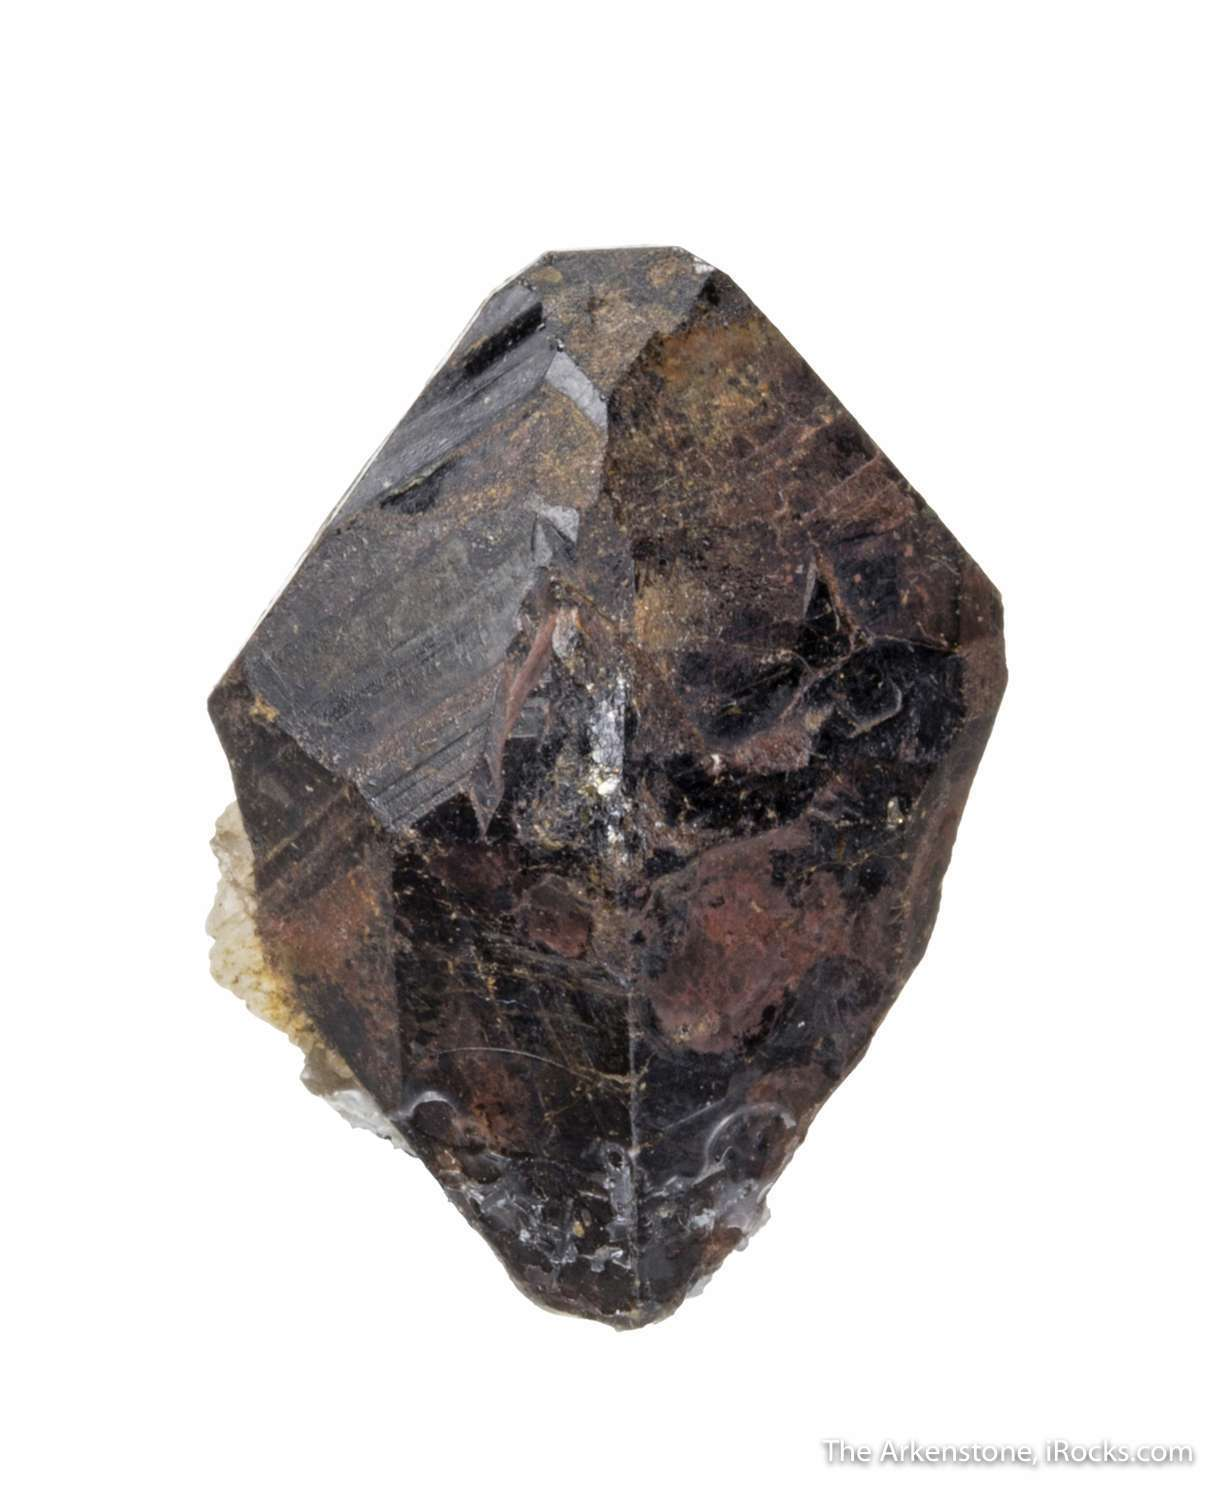 This monazite crystal rare earth phosphate classic old REE enriched